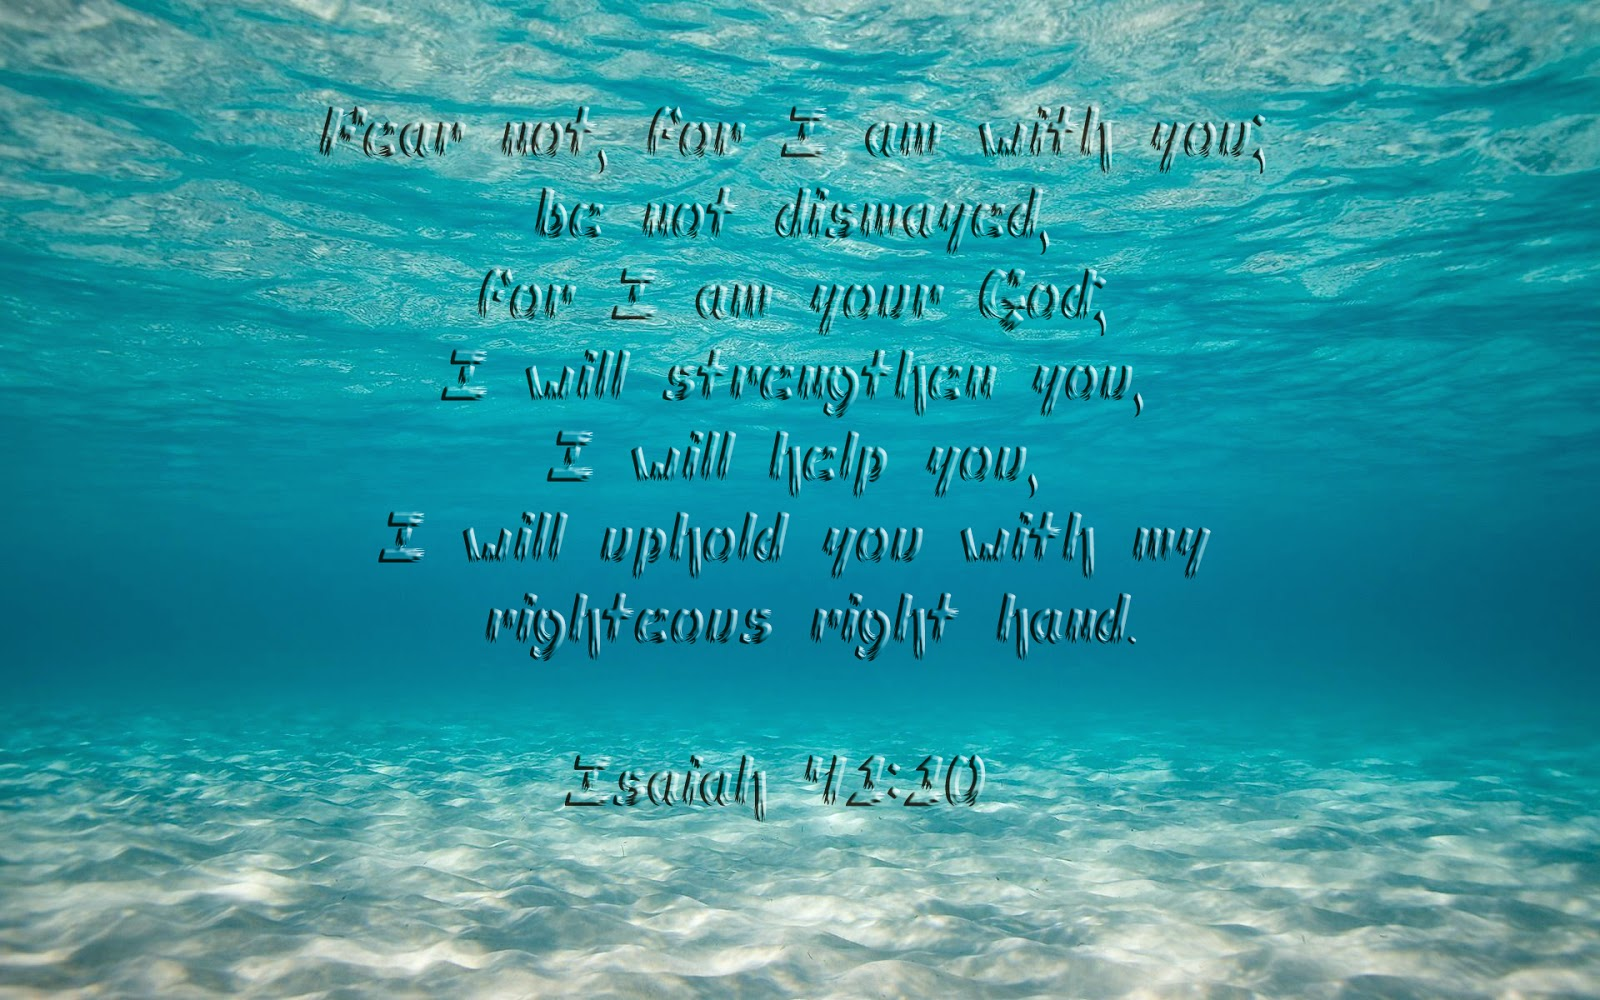 Isaiah 41 10 Bible Verse Wallpaper